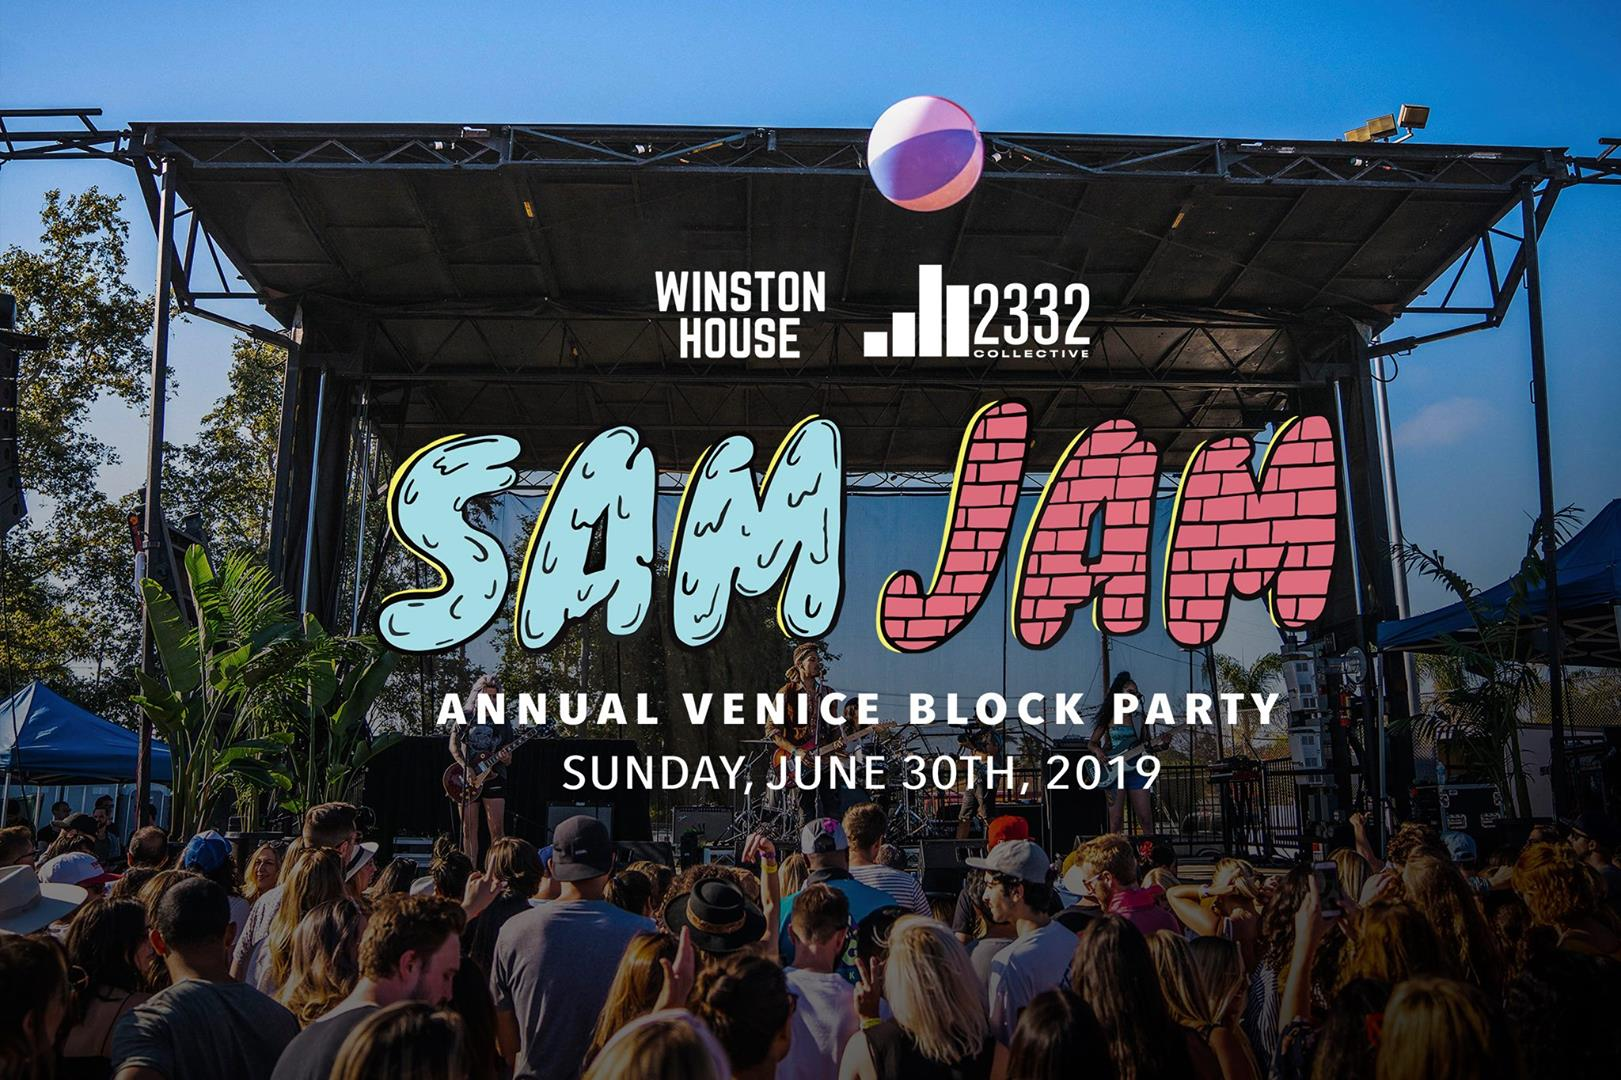 SAMJAM - ANNUAL BLOCK PARTY RETURNS JUNE 30TH!